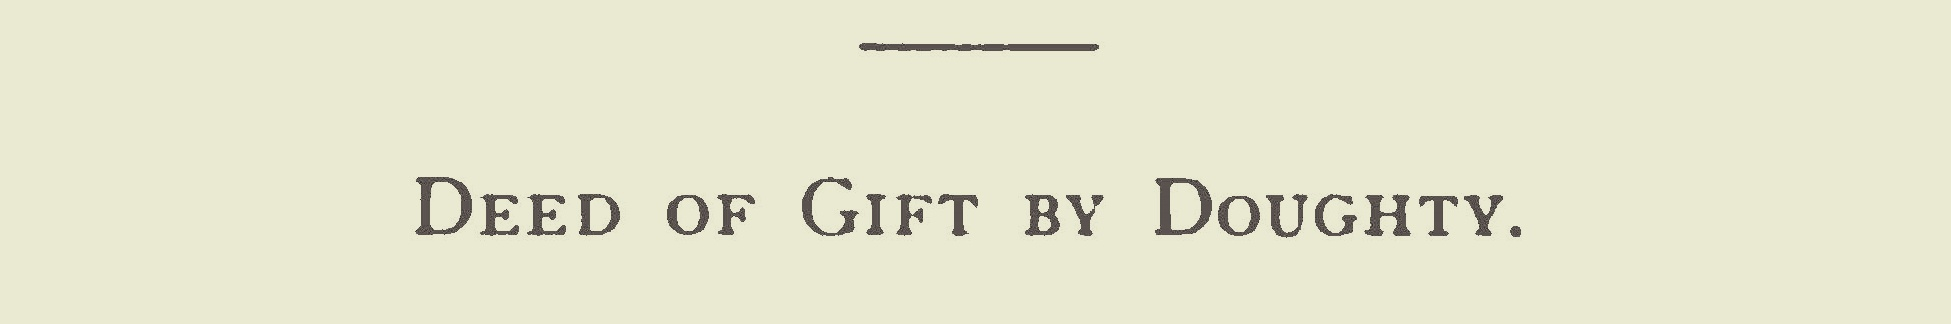 Doughty, Francis, Deed of Gift Title Page.jpg